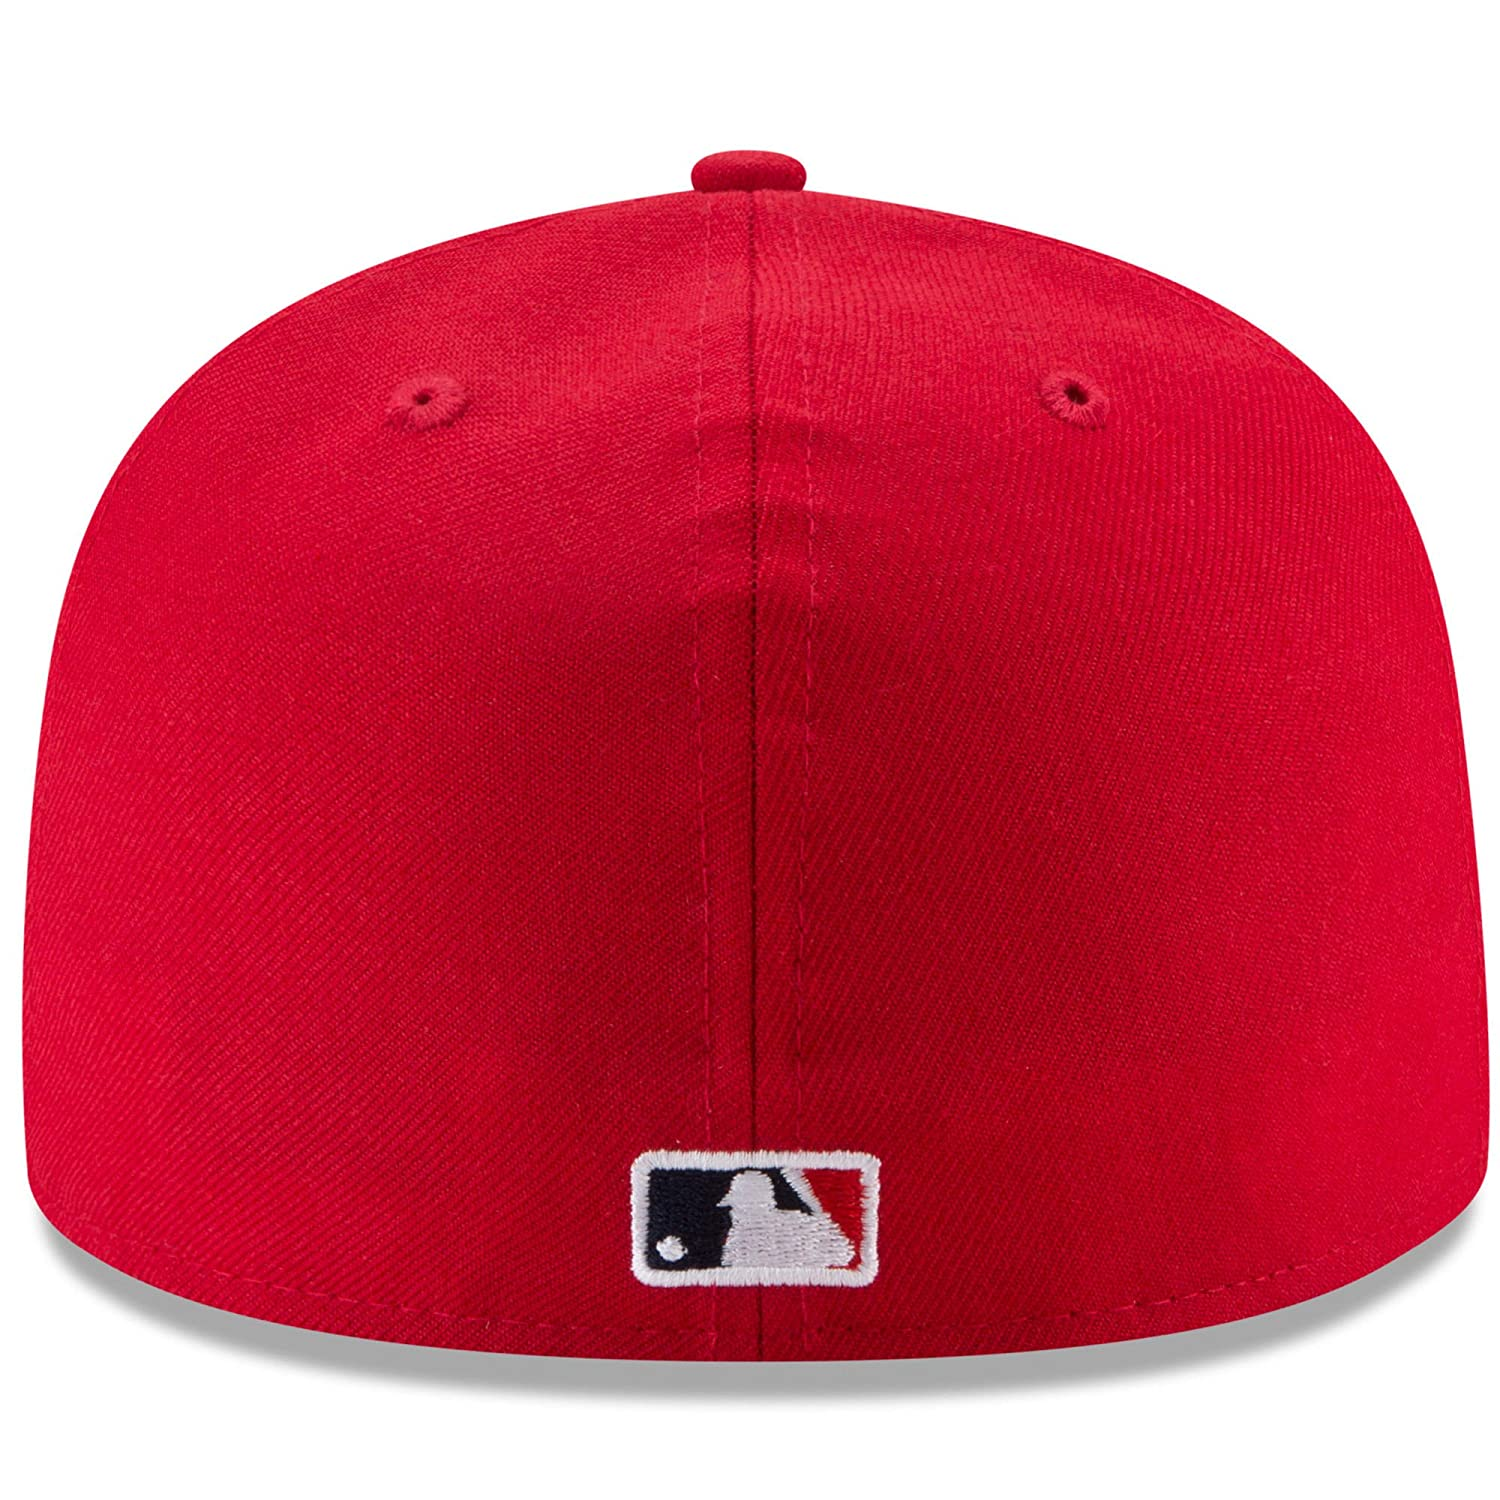 bbc99982 Amazon.com: New Era 59FIFTY Los Angeles Angels of Anaheim 2018 Authentic  Collection On Field Game Cap: Clothing